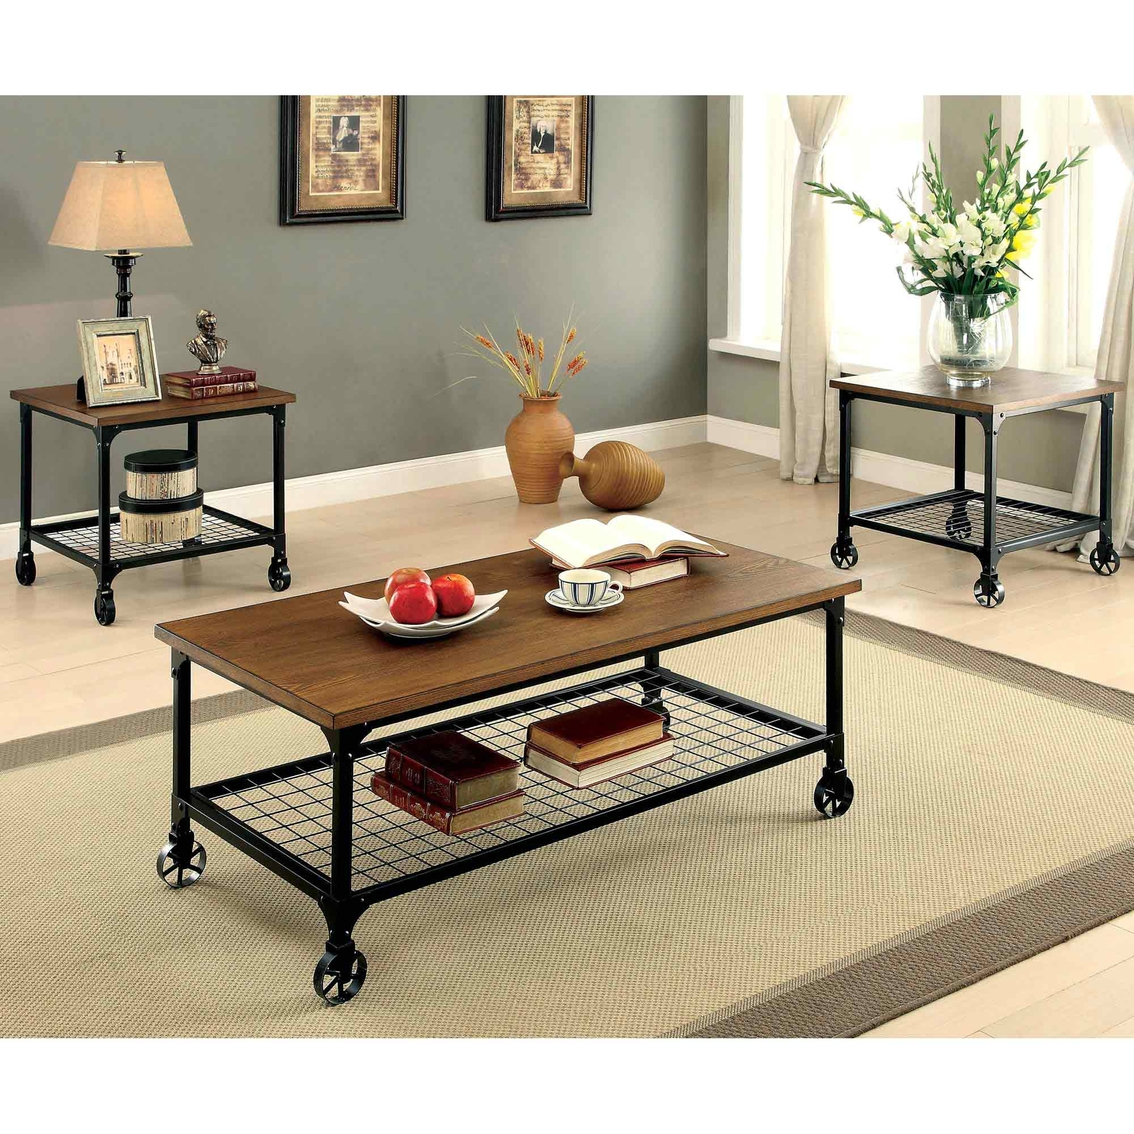 Furniture Store Online Usa: Furniture Of America Ventura Cocktail With End Tables 3 Pk